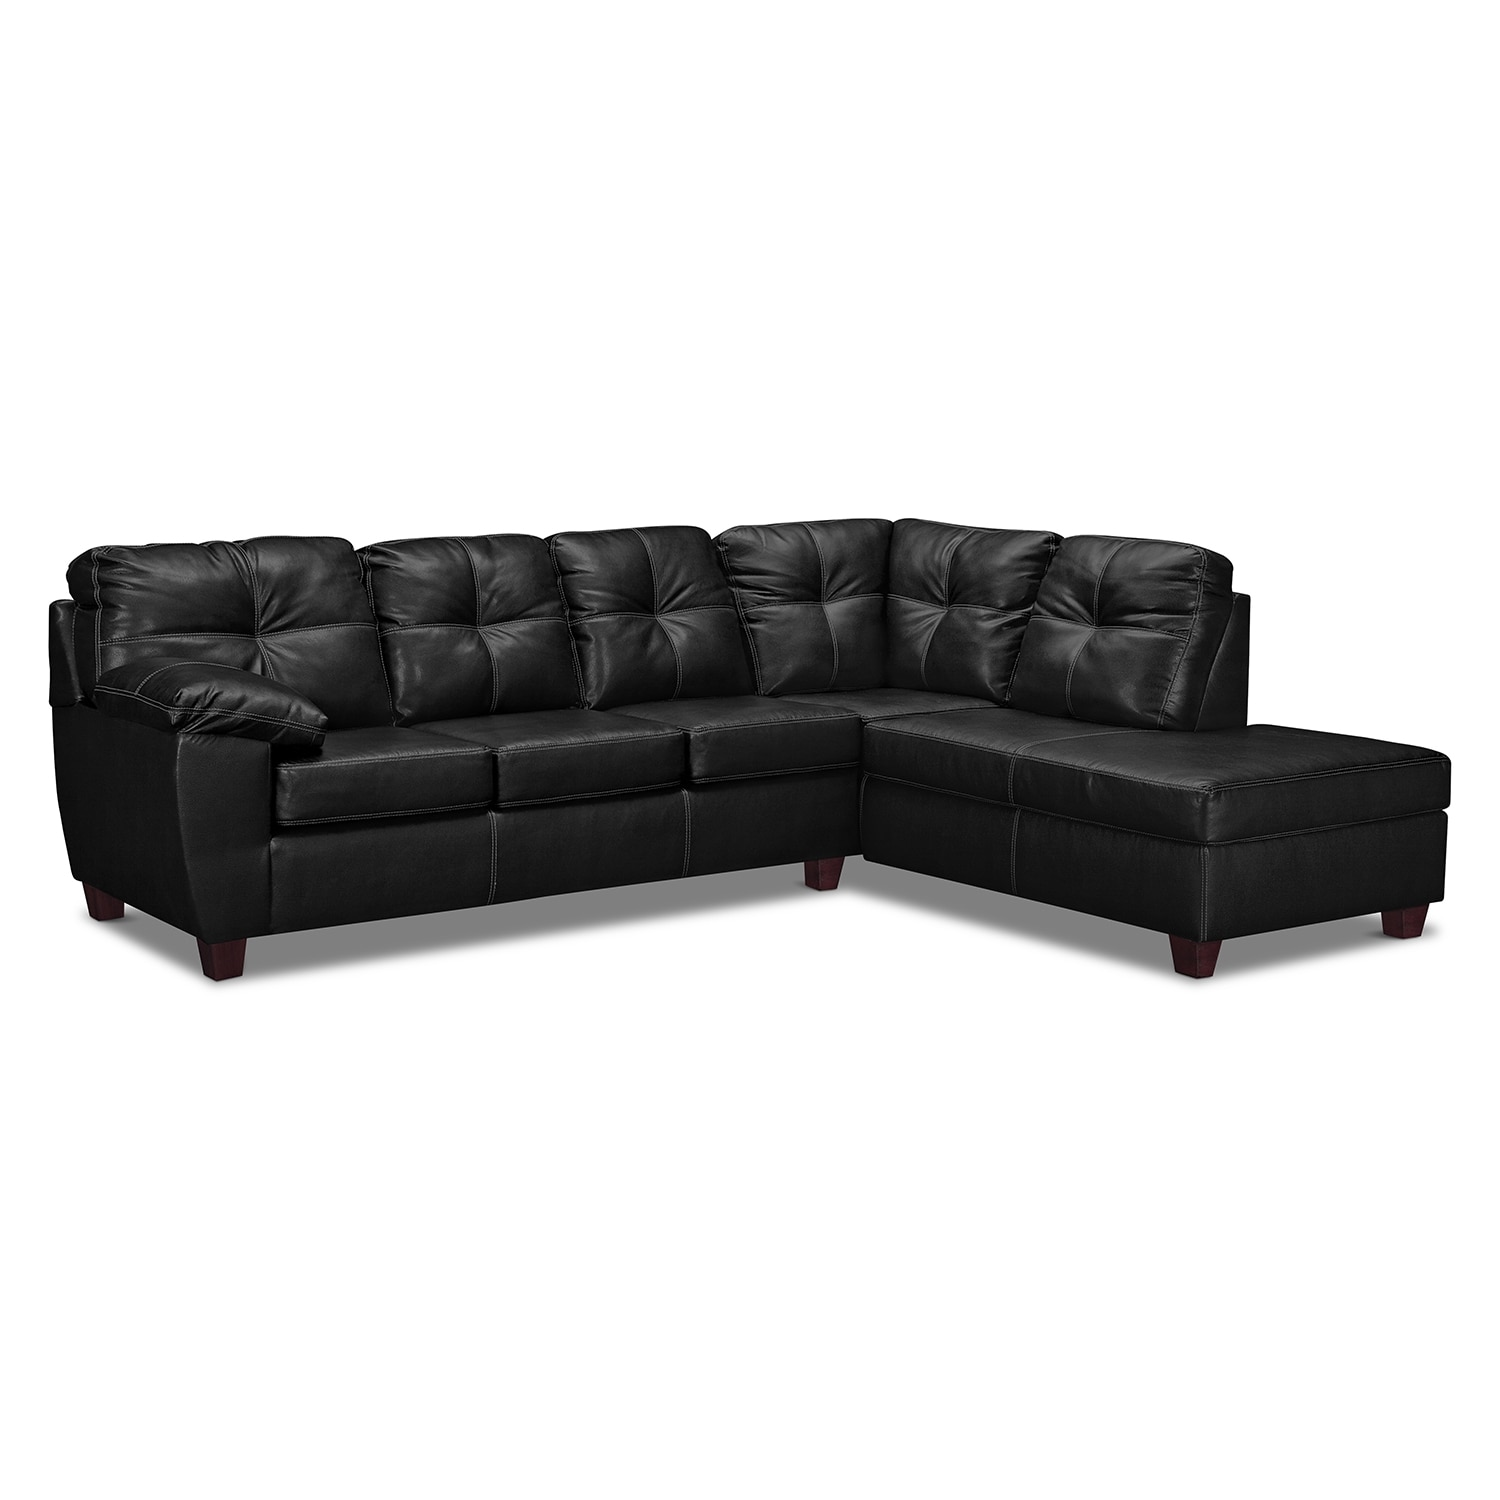 Living Room Furniture - Rialto 2-Piece Innerspring Sleeper Sectional with Right-Facing Chaise - Onyx